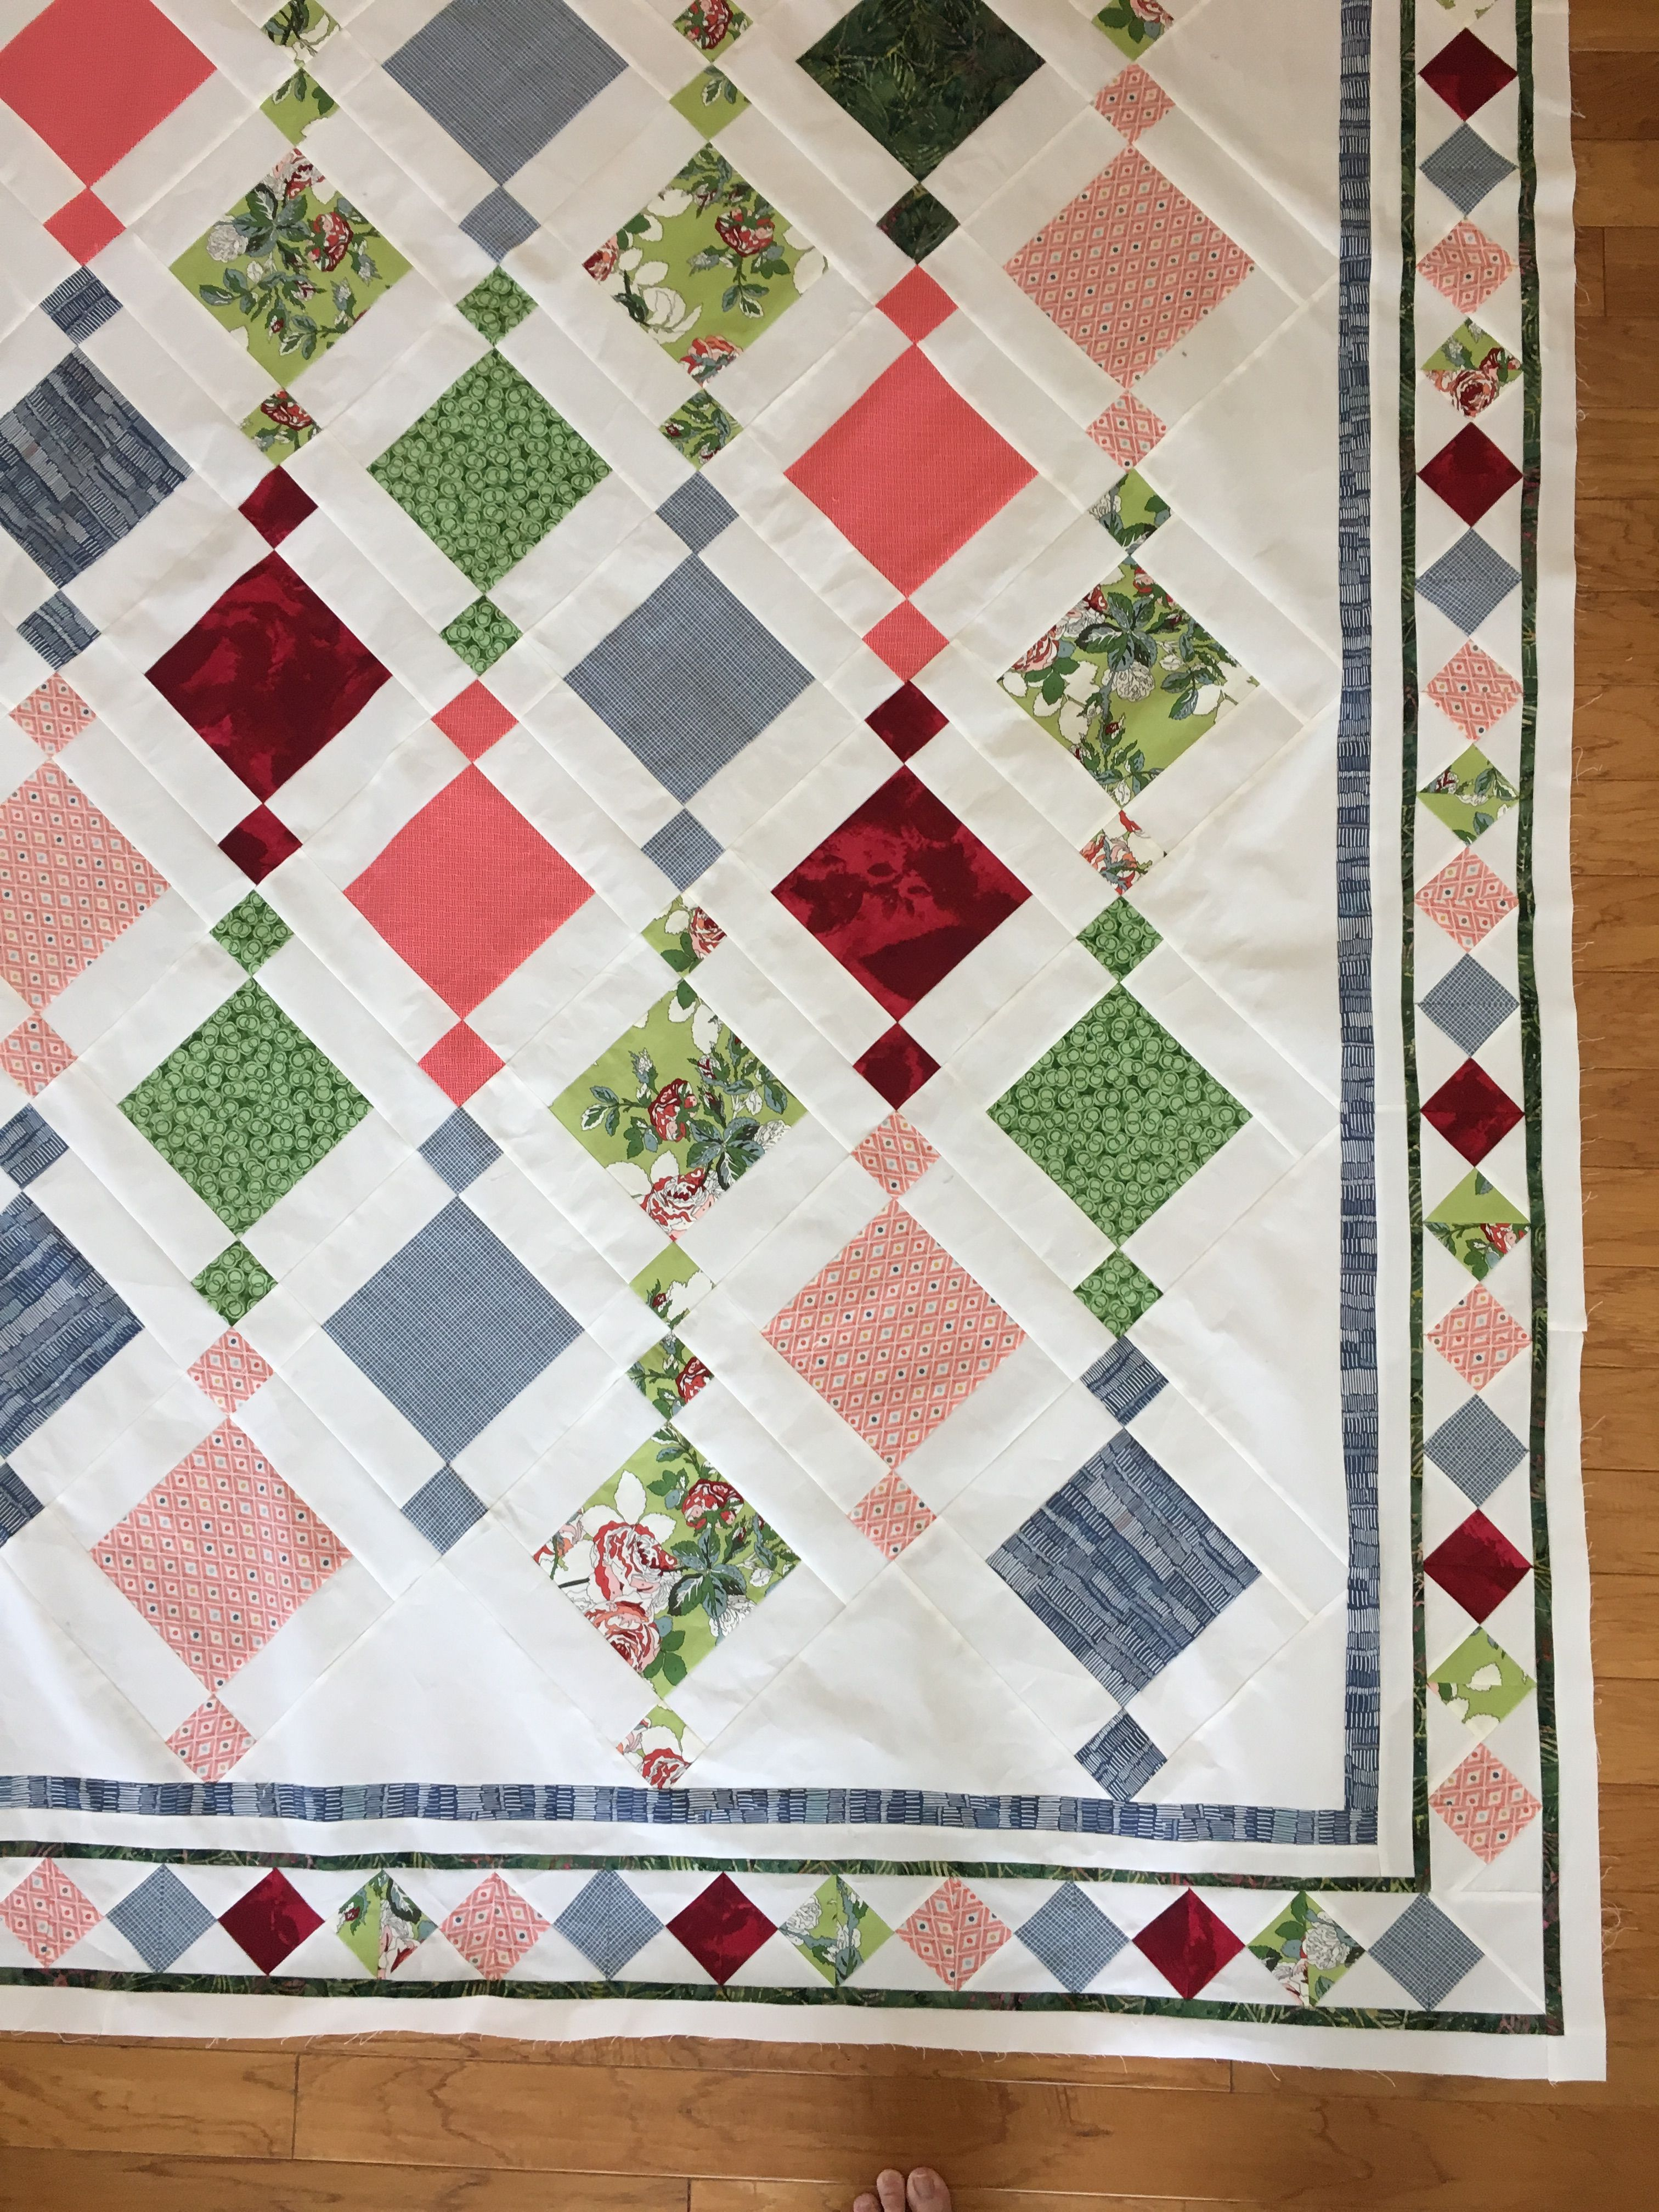 Chandelier Charm Pack Quilt With Diamond Braid Border Craftidea Org Quilt Patterns Quilts Charm Pack Quilt